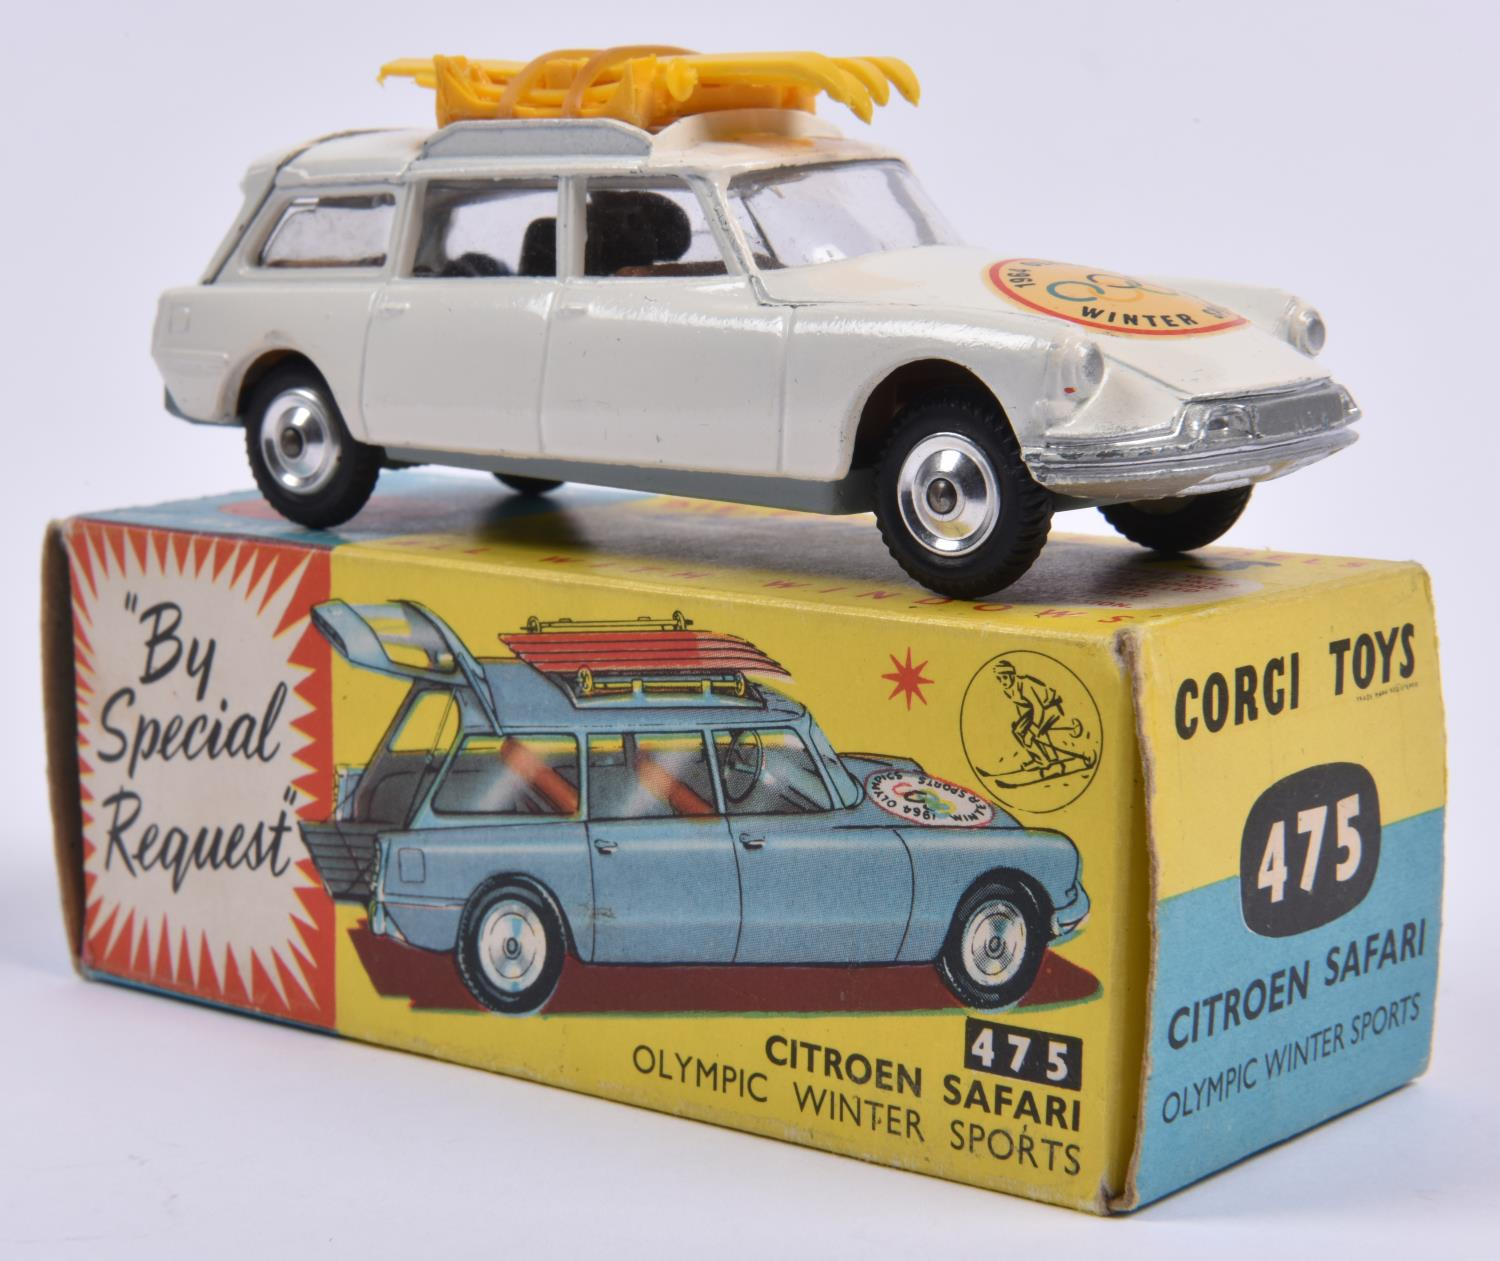 Lot 303 - Corgi Toys Citroen Safari Olympic Winter Sports (475). In white with skis and poles to roof, 1964